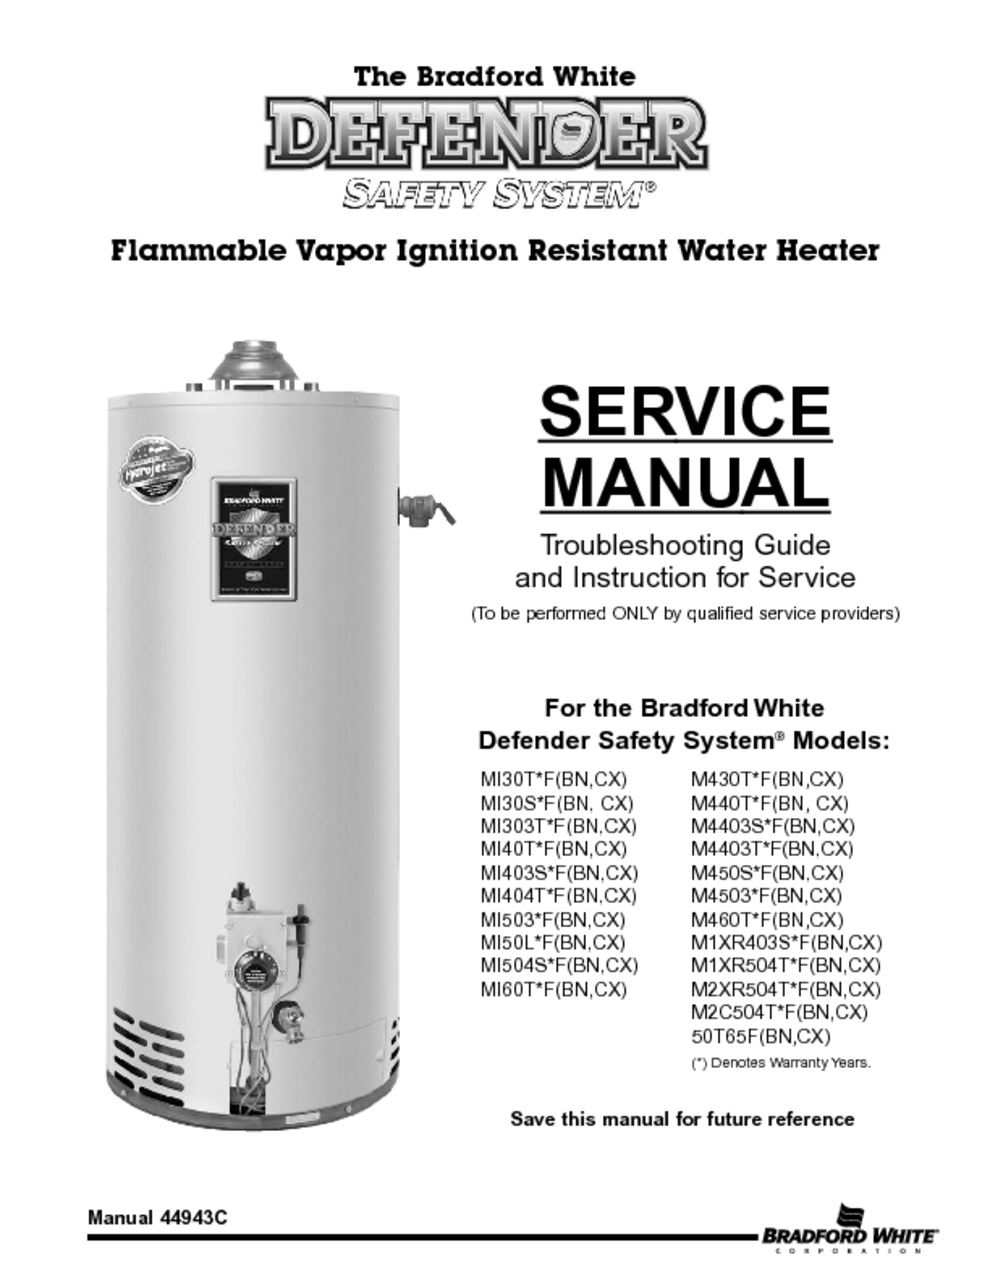 hight resolution of m1xr504t manuals m1xr504t manuals the bradford white flammable vapor ignition resistant water heater service manual